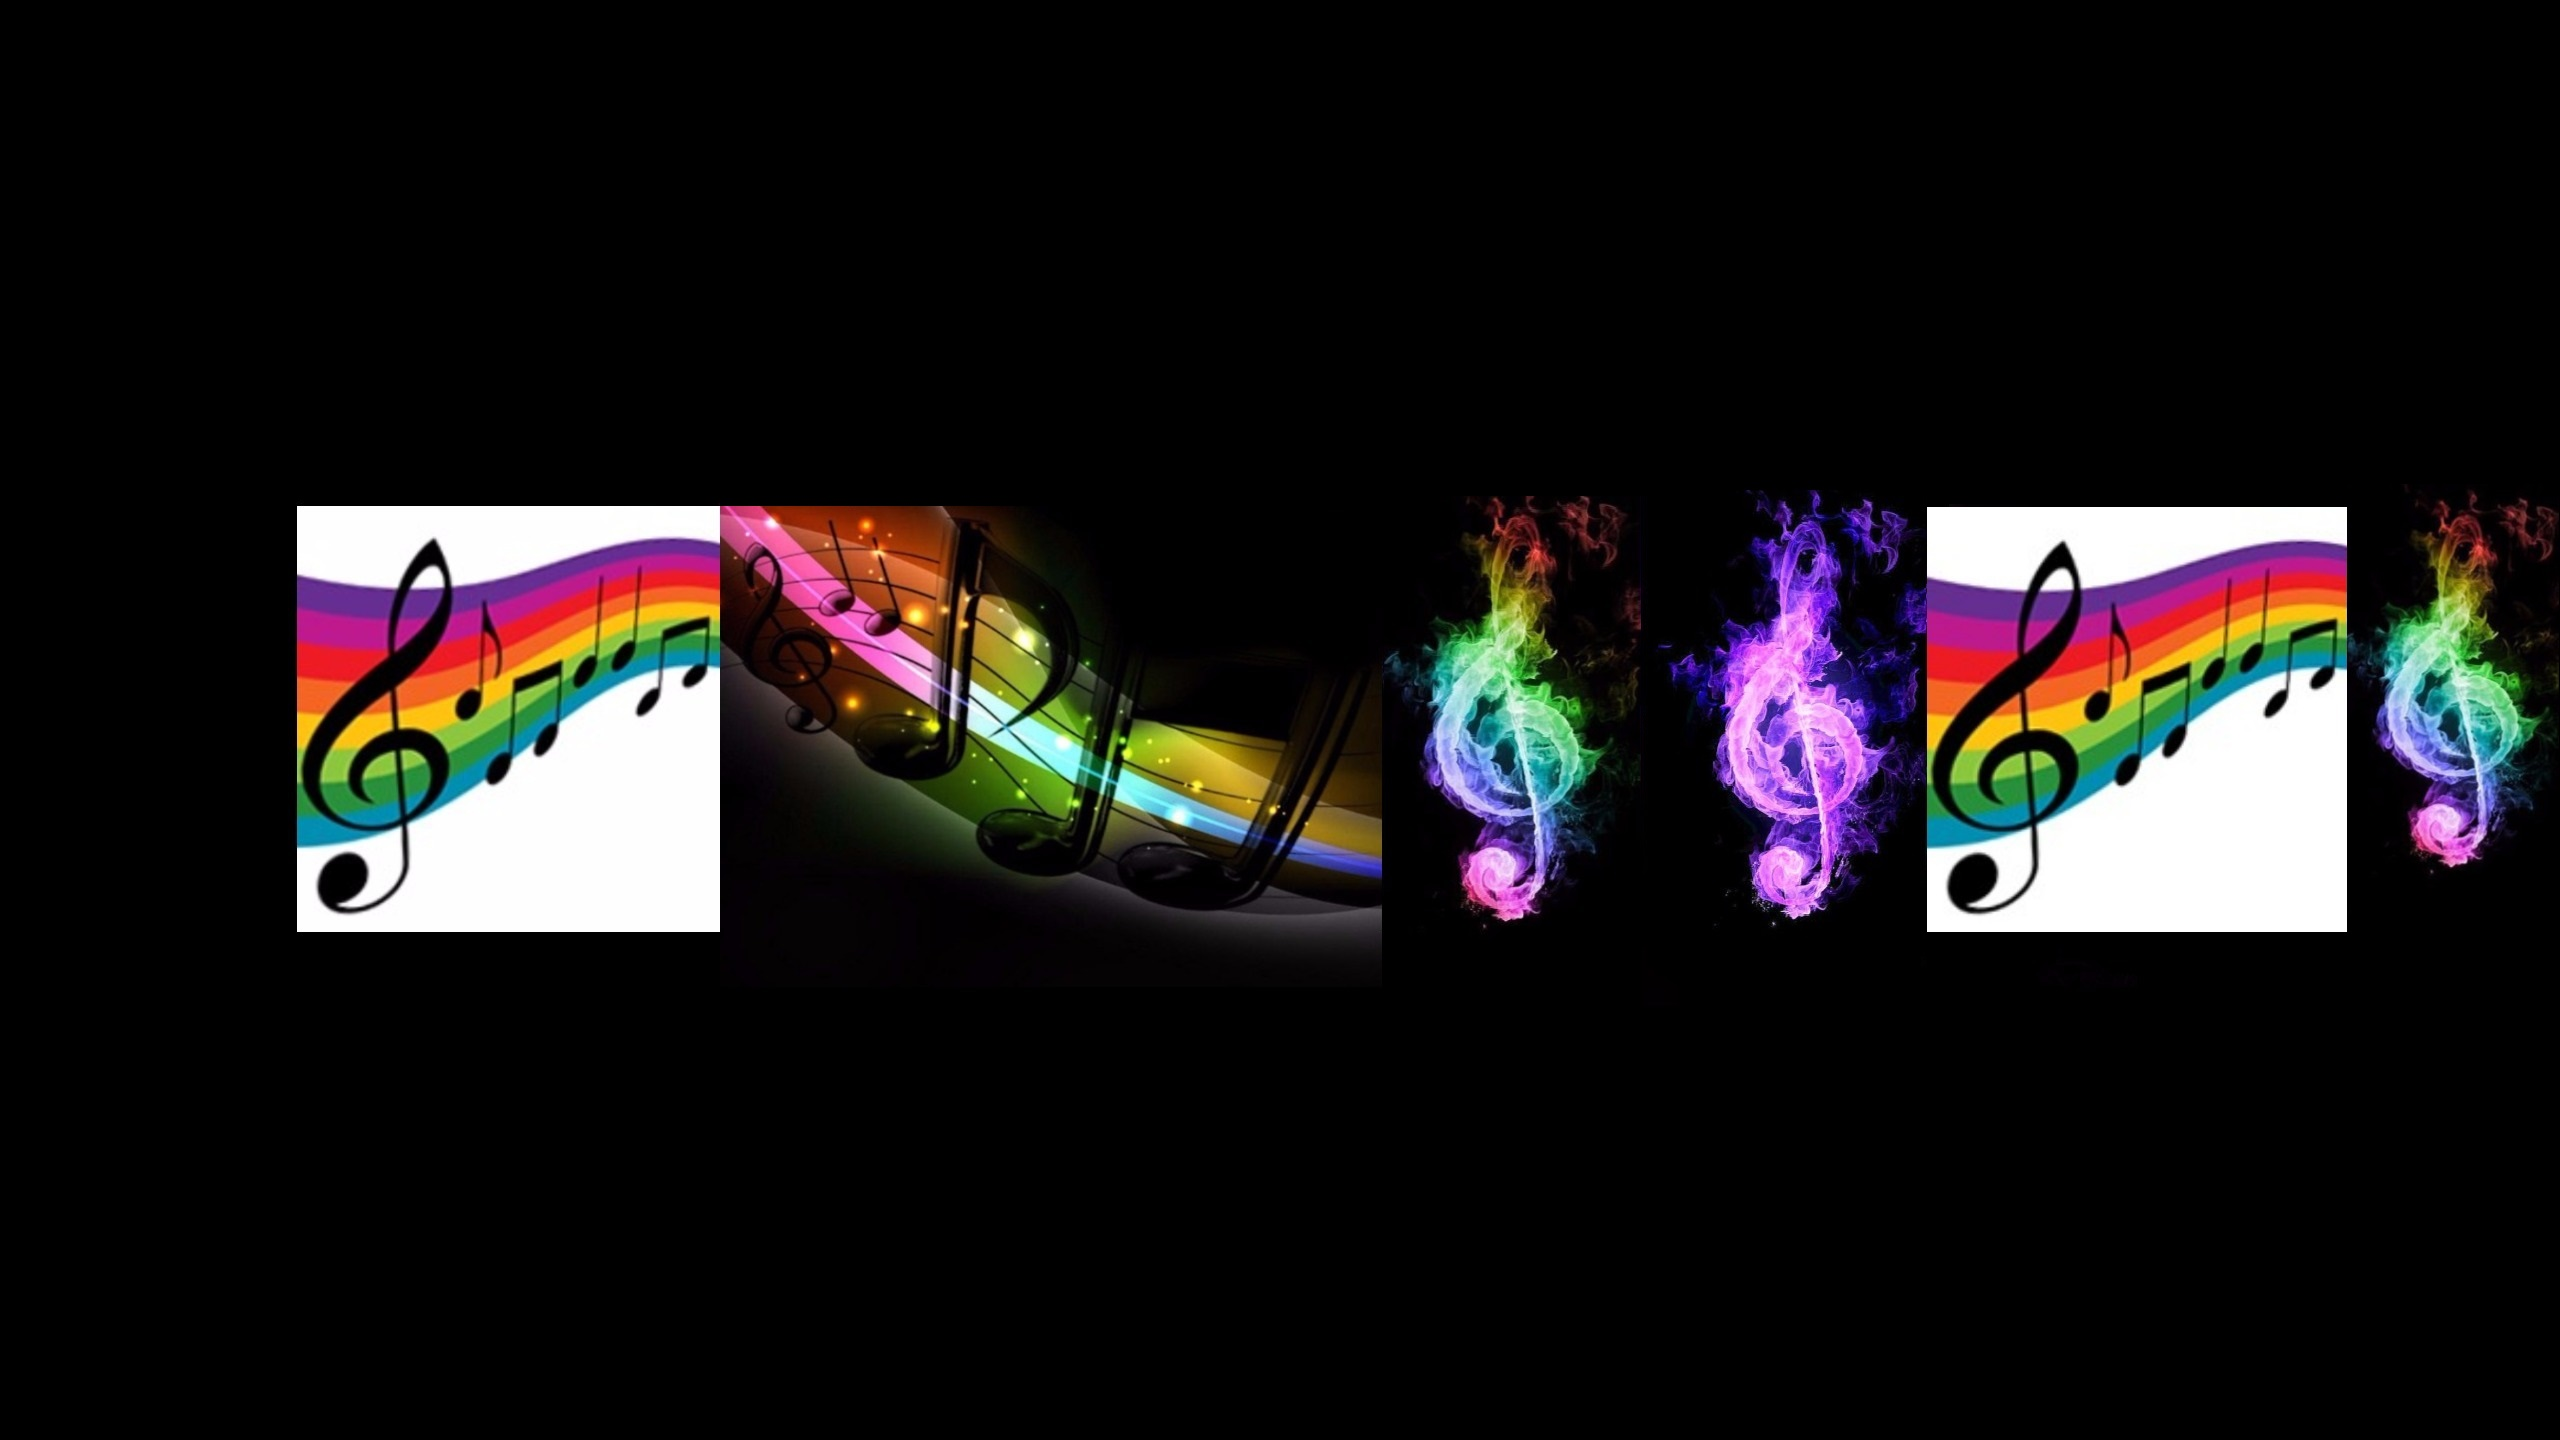 Musicas Capa Para Youtube By Biancaperes On Deviantart